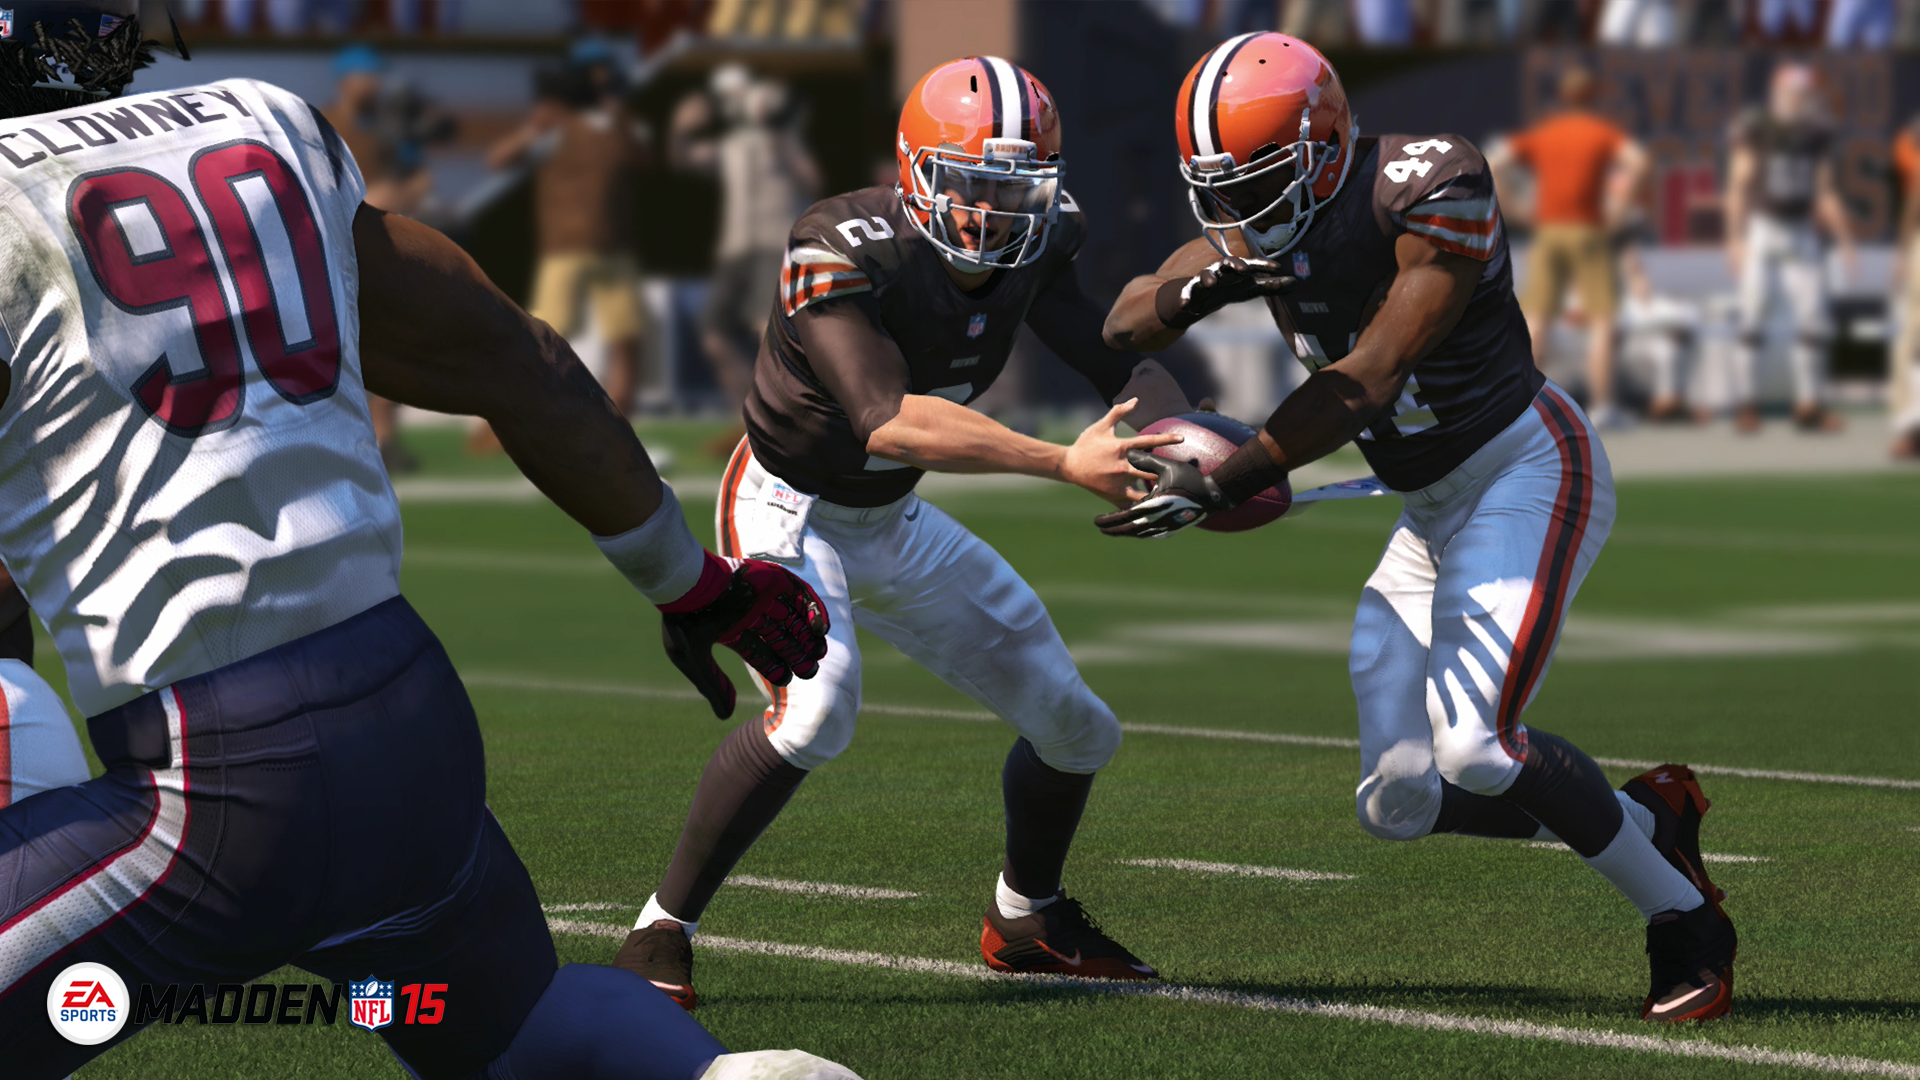 MaddenNFL15_review(6)